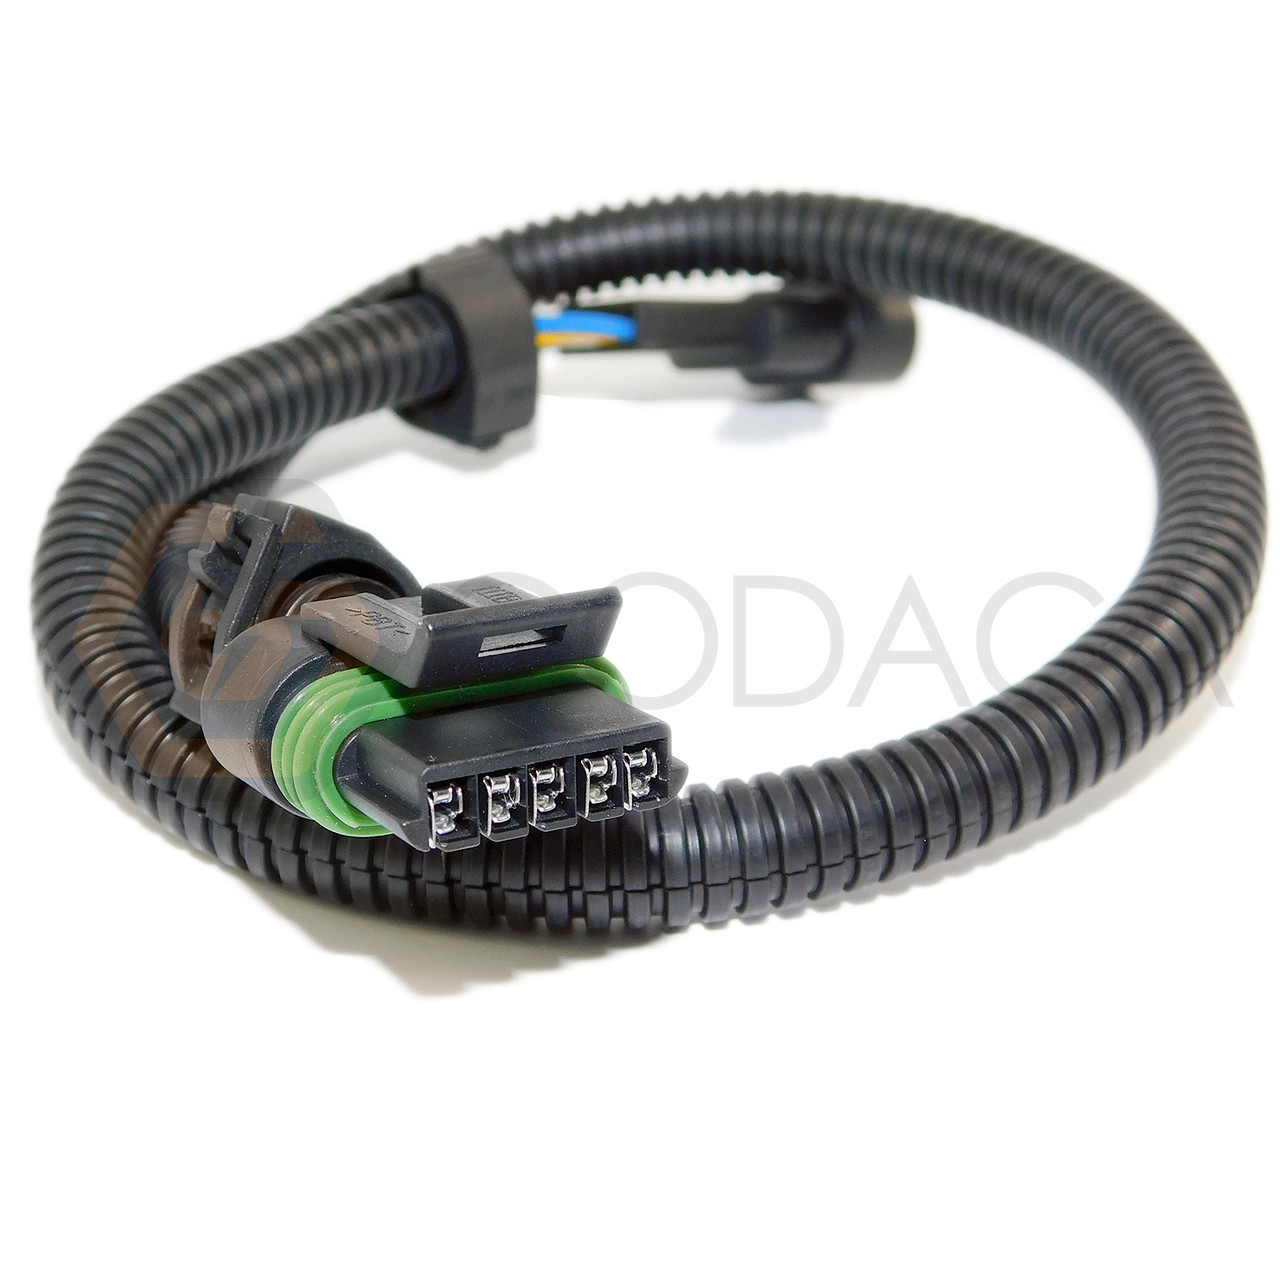 Outstanding 1X Wiring Harnesses 5 Way 5 Pin Extension For Maf Mass Air Flow Wiring Digital Resources Dylitashwinbiharinl